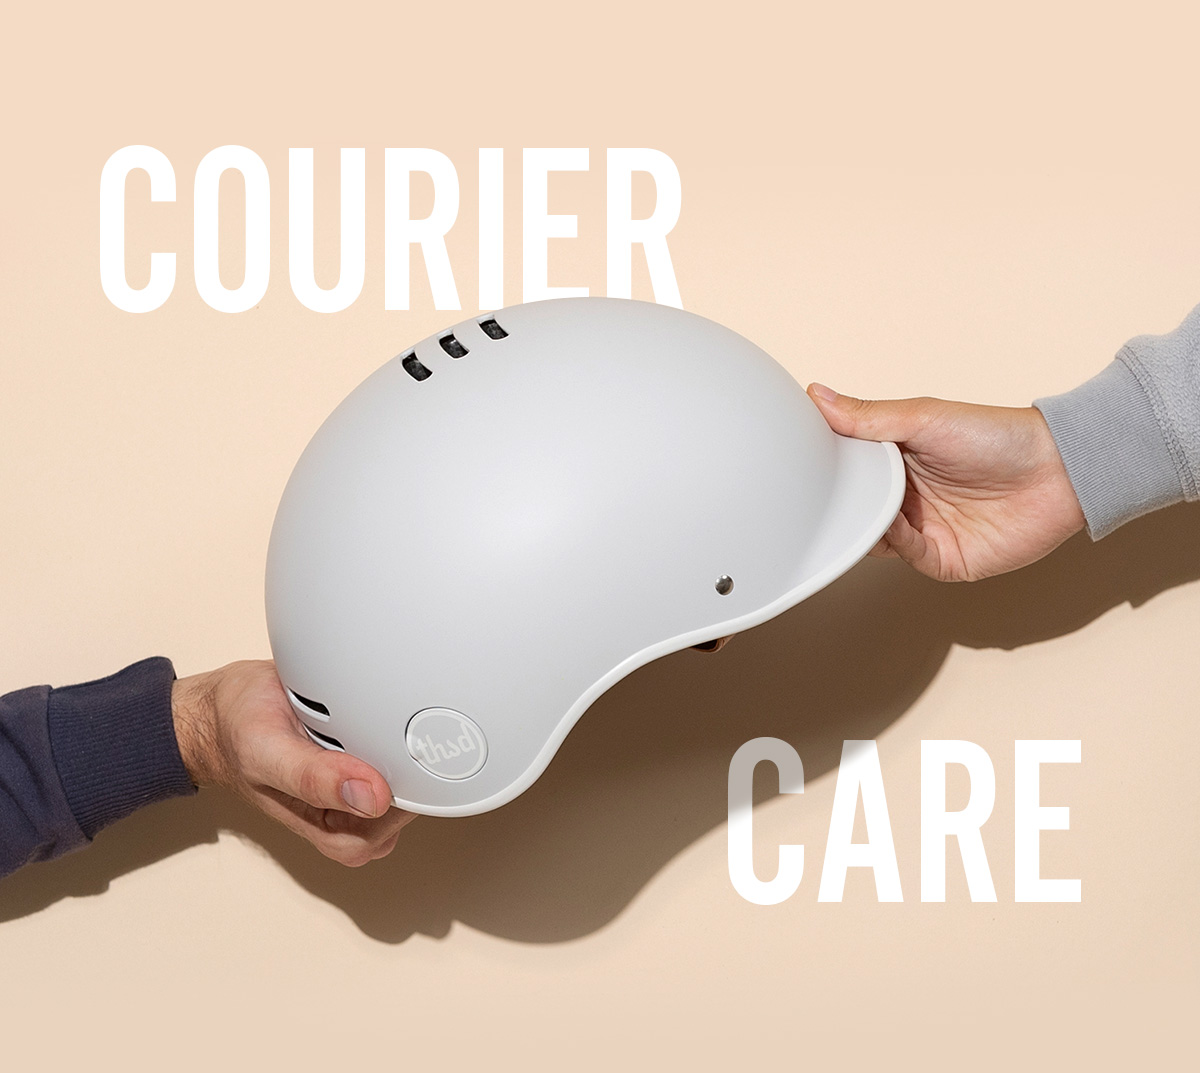 Courier Care Program